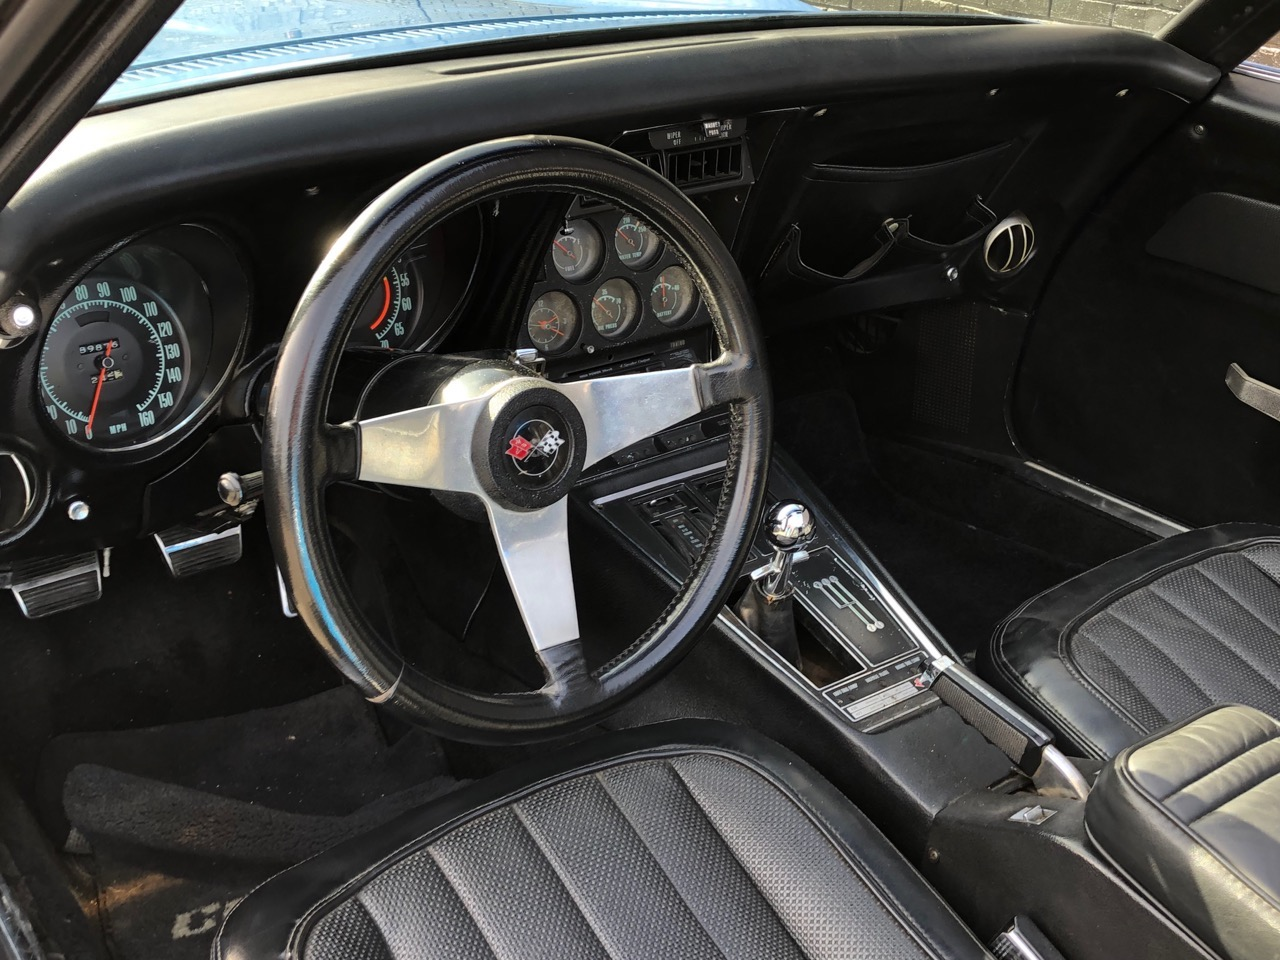 1969 Corvette Stingray >> Used 1969 Chevrolet Corvette C3 Stingray For Sale ($33,500) | SportsCar LA Stock #A1122